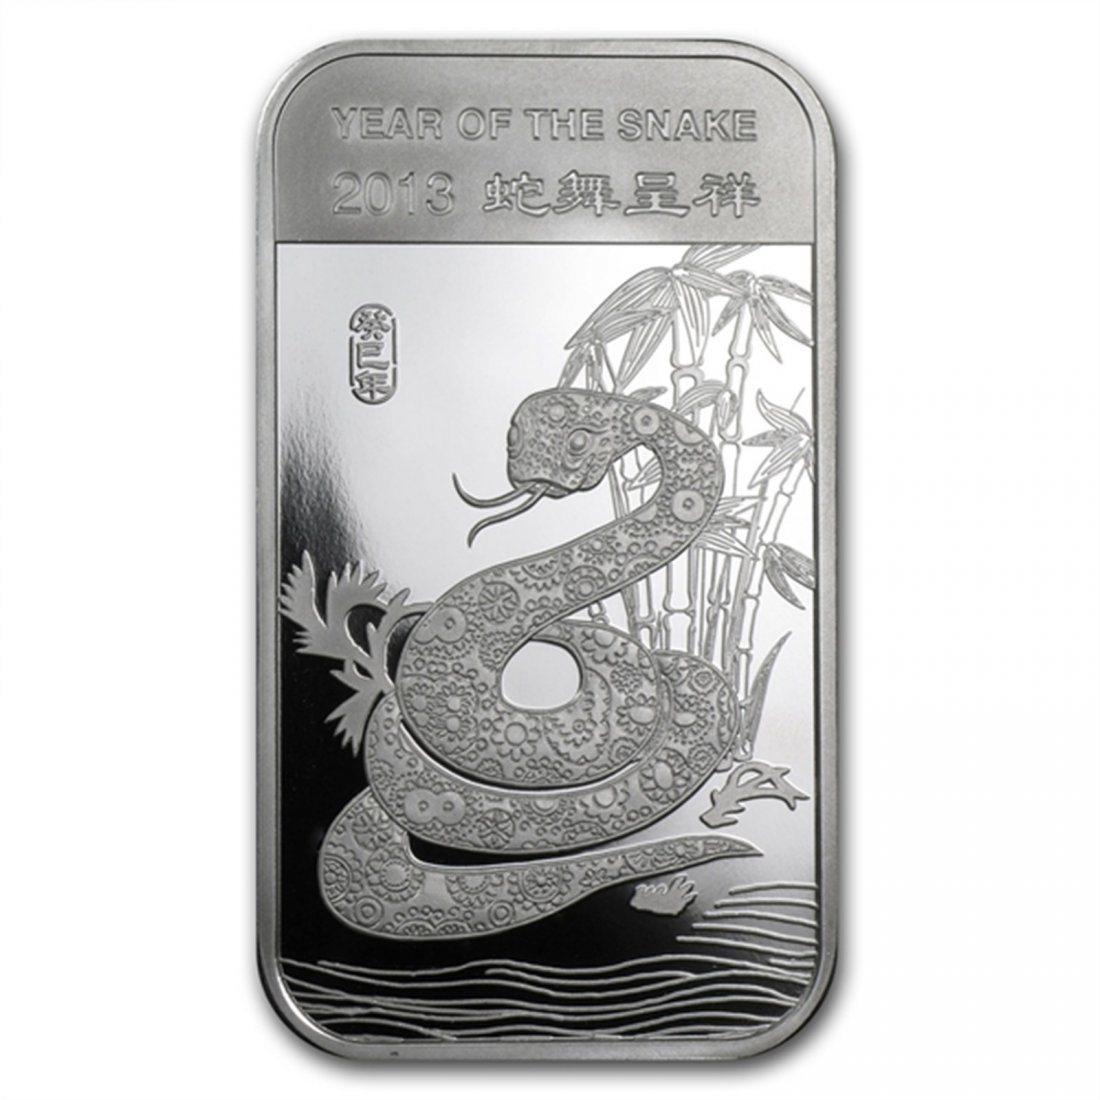 1 oz Year of the Snake Silver Bar .999 Fine